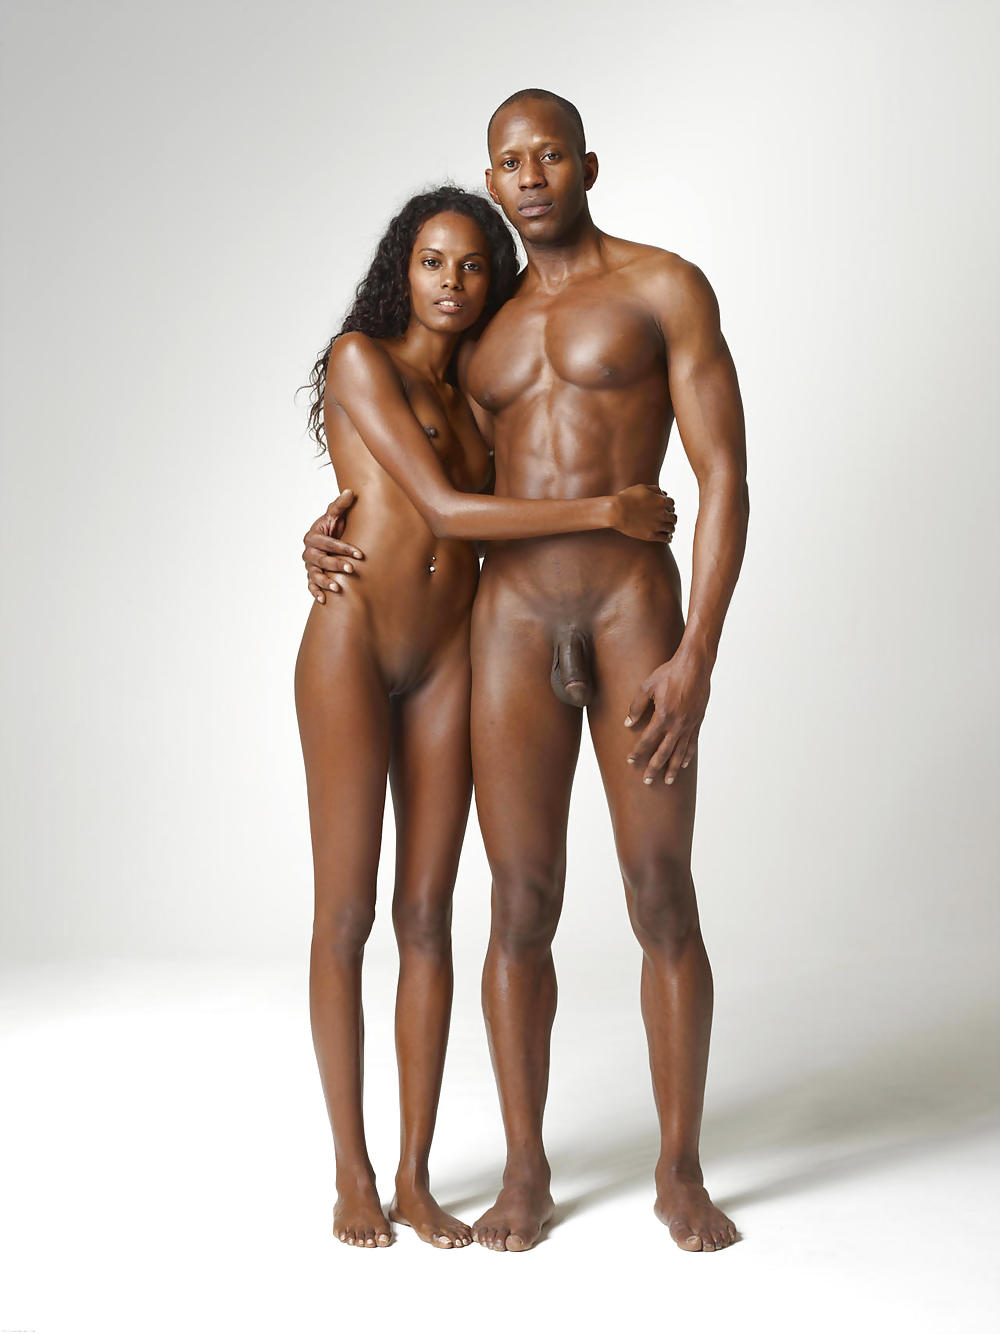 Free Black Men Posing Nude